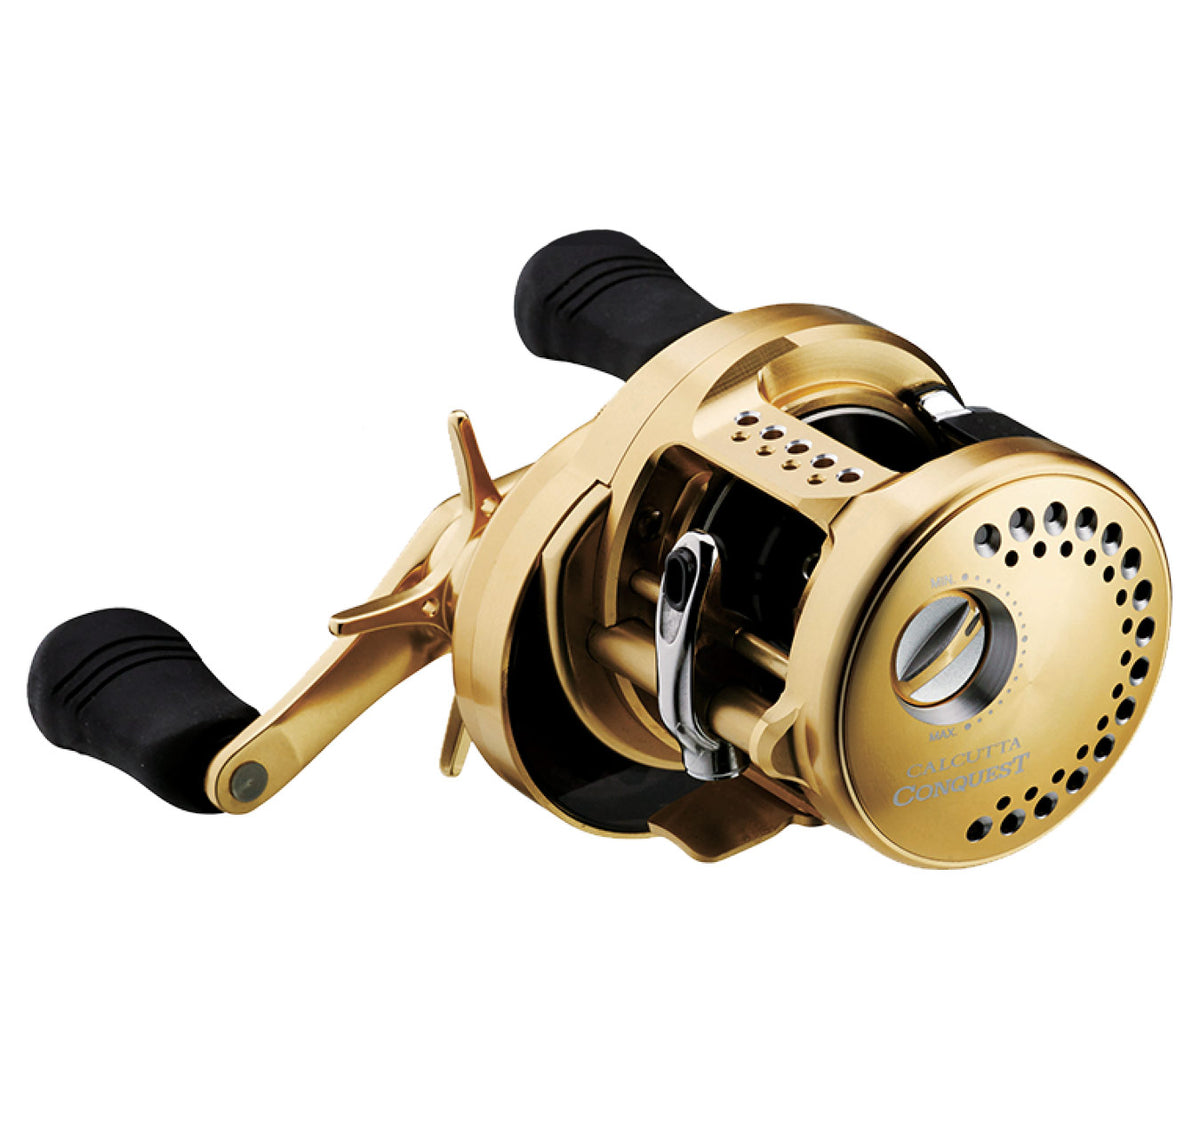 Shimano Calcutta Conquest 100 Reel